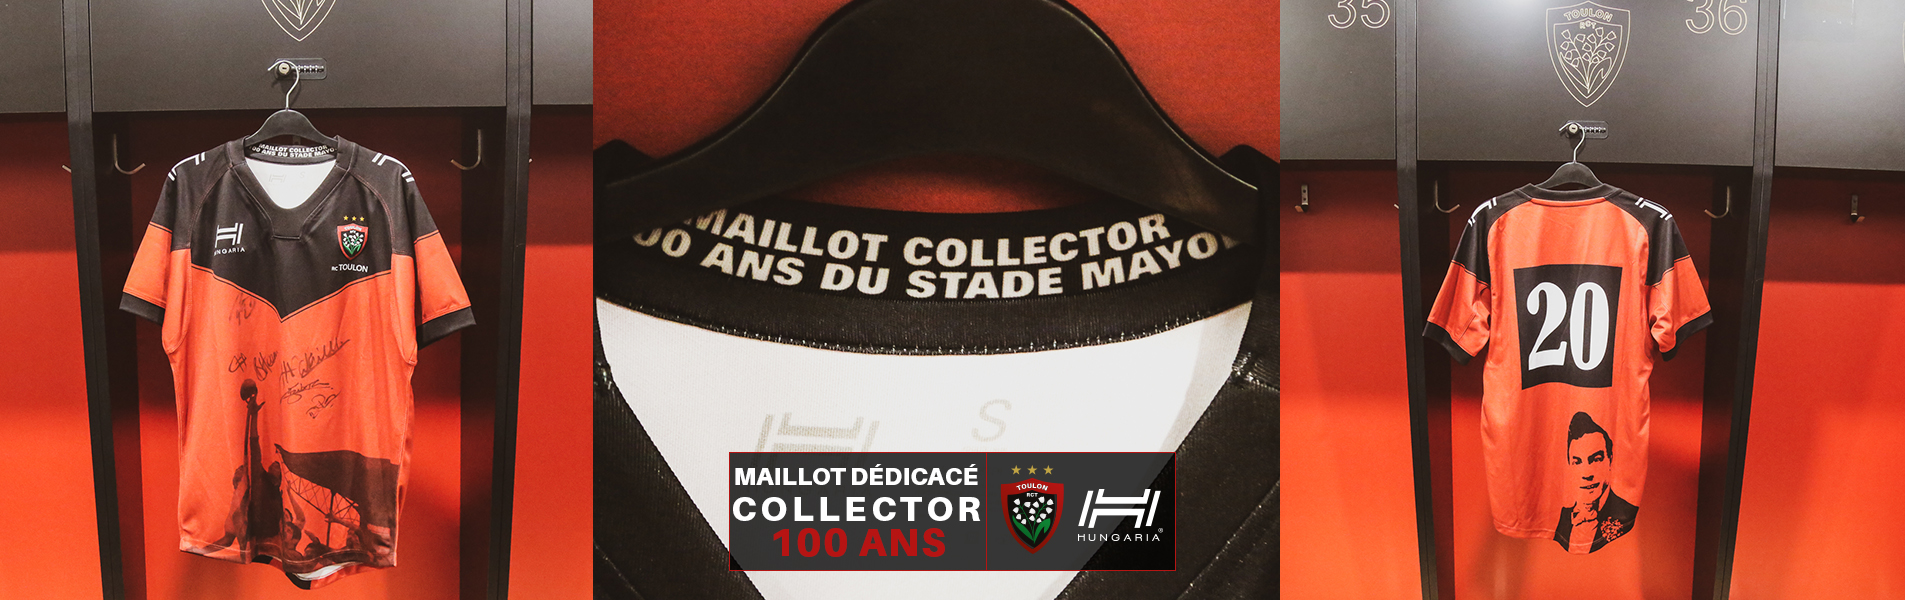 maillot_100_ans_1905x600